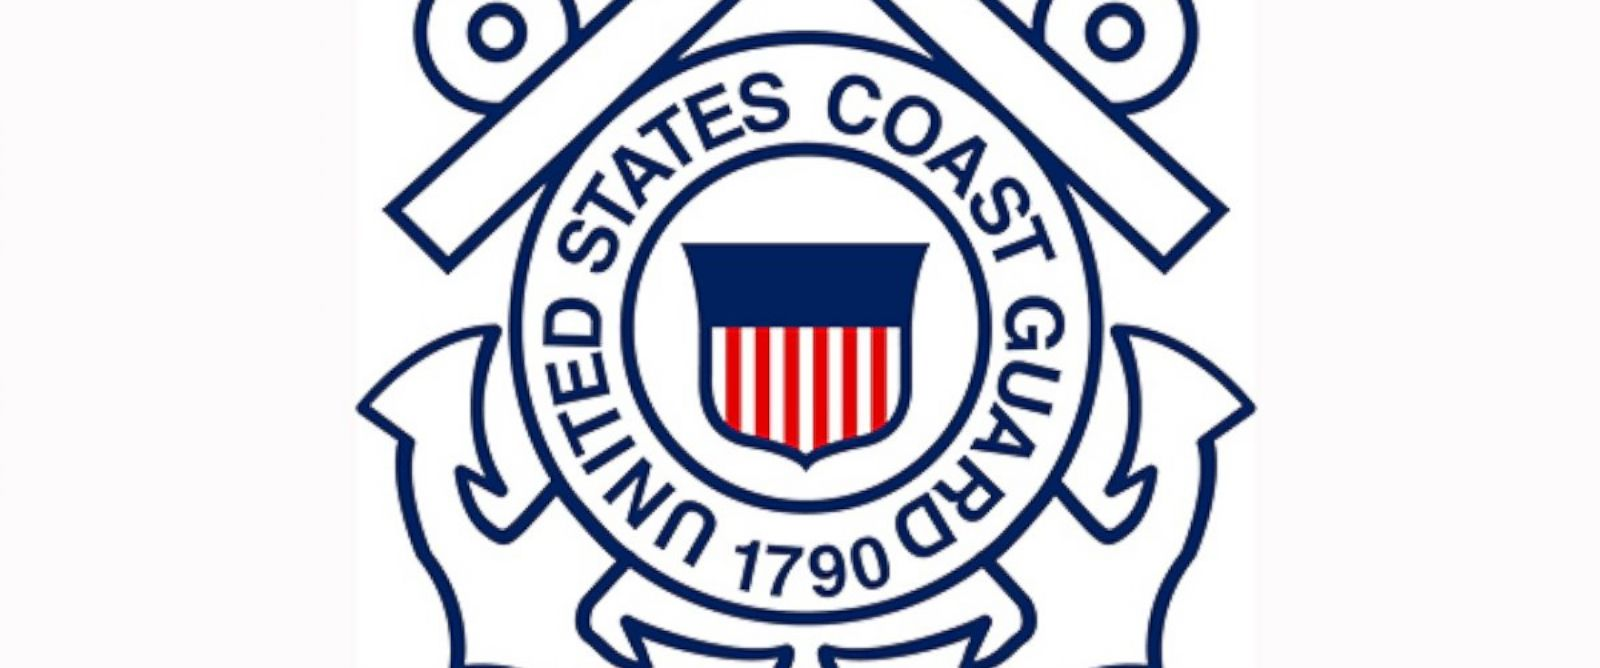 PHOTO: National Coast Guard Emblem